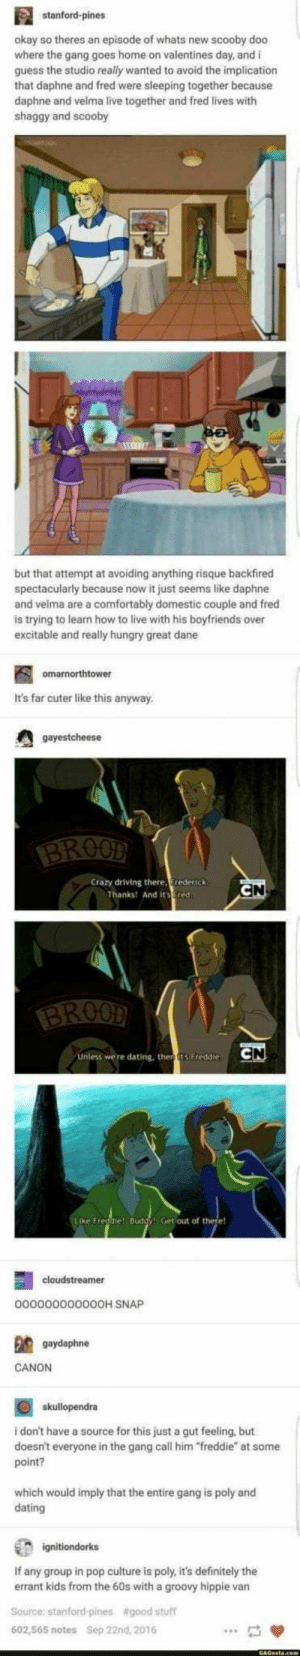 "22+ Fresh And Fabulous Tumblr Posts That Deserves Your Laugh - Funquila: stanford-pines  okay so theres an episode of whats new scooby doo  where the gang goes home on valentines day, and i  guess the studio really wanted to avoid the implication  that daphne and fred were sleeping together because  daphne and velma live together and fred lives with  shaggy and scooby  but that attempt at avoiding anything risque backfired  spectacularly because now it just seems like daphne  and velma are a comfortably domestic couple and fred  is trying to learn how to live with his boyfriends over  excitable and really hungry great dane  omarnorthtower  It's far cuter like this anyway  gayestcheese  BROOD  Crazy driving there, rederick  Thanks! And its Fred  CN  BROOD  CN  Unless we're dating, then ts Freddie  Like Freddie! Buddy! Get out of there!  cloudstreamer  0000000000O0H SNAP  gaydaphne  CANON  skullopendra  i don't have a source for this just a gut feeling, but  doesn't everyone in the gang call him ""freddie"" at some  point?  which would imply that the entire gang is poly and  dating  ignitiondorks  If any group in pop culture is poly, it's definitely the  errant kids from the 60s with a groovy hippie van  Source: stanford-pines  #good stuff  602,565 notes  Sep 22nd, 2016 22+ Fresh And Fabulous Tumblr Posts That Deserves Your Laugh - Funquila"